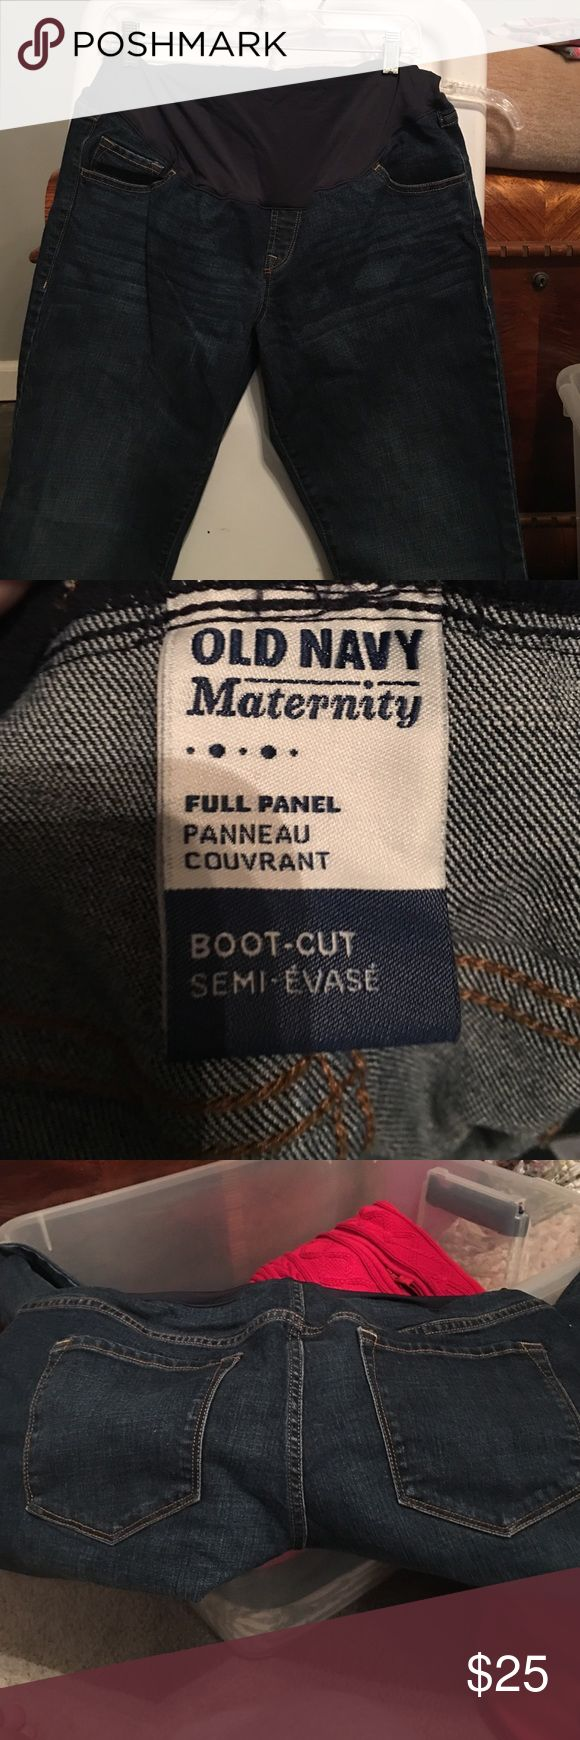 Old Navy boot cut full panel maternity jeans Basic boot cut maternity jeans from Old Navy. Have full belly panel. Worn once Old Navy Jeans Boot Cut